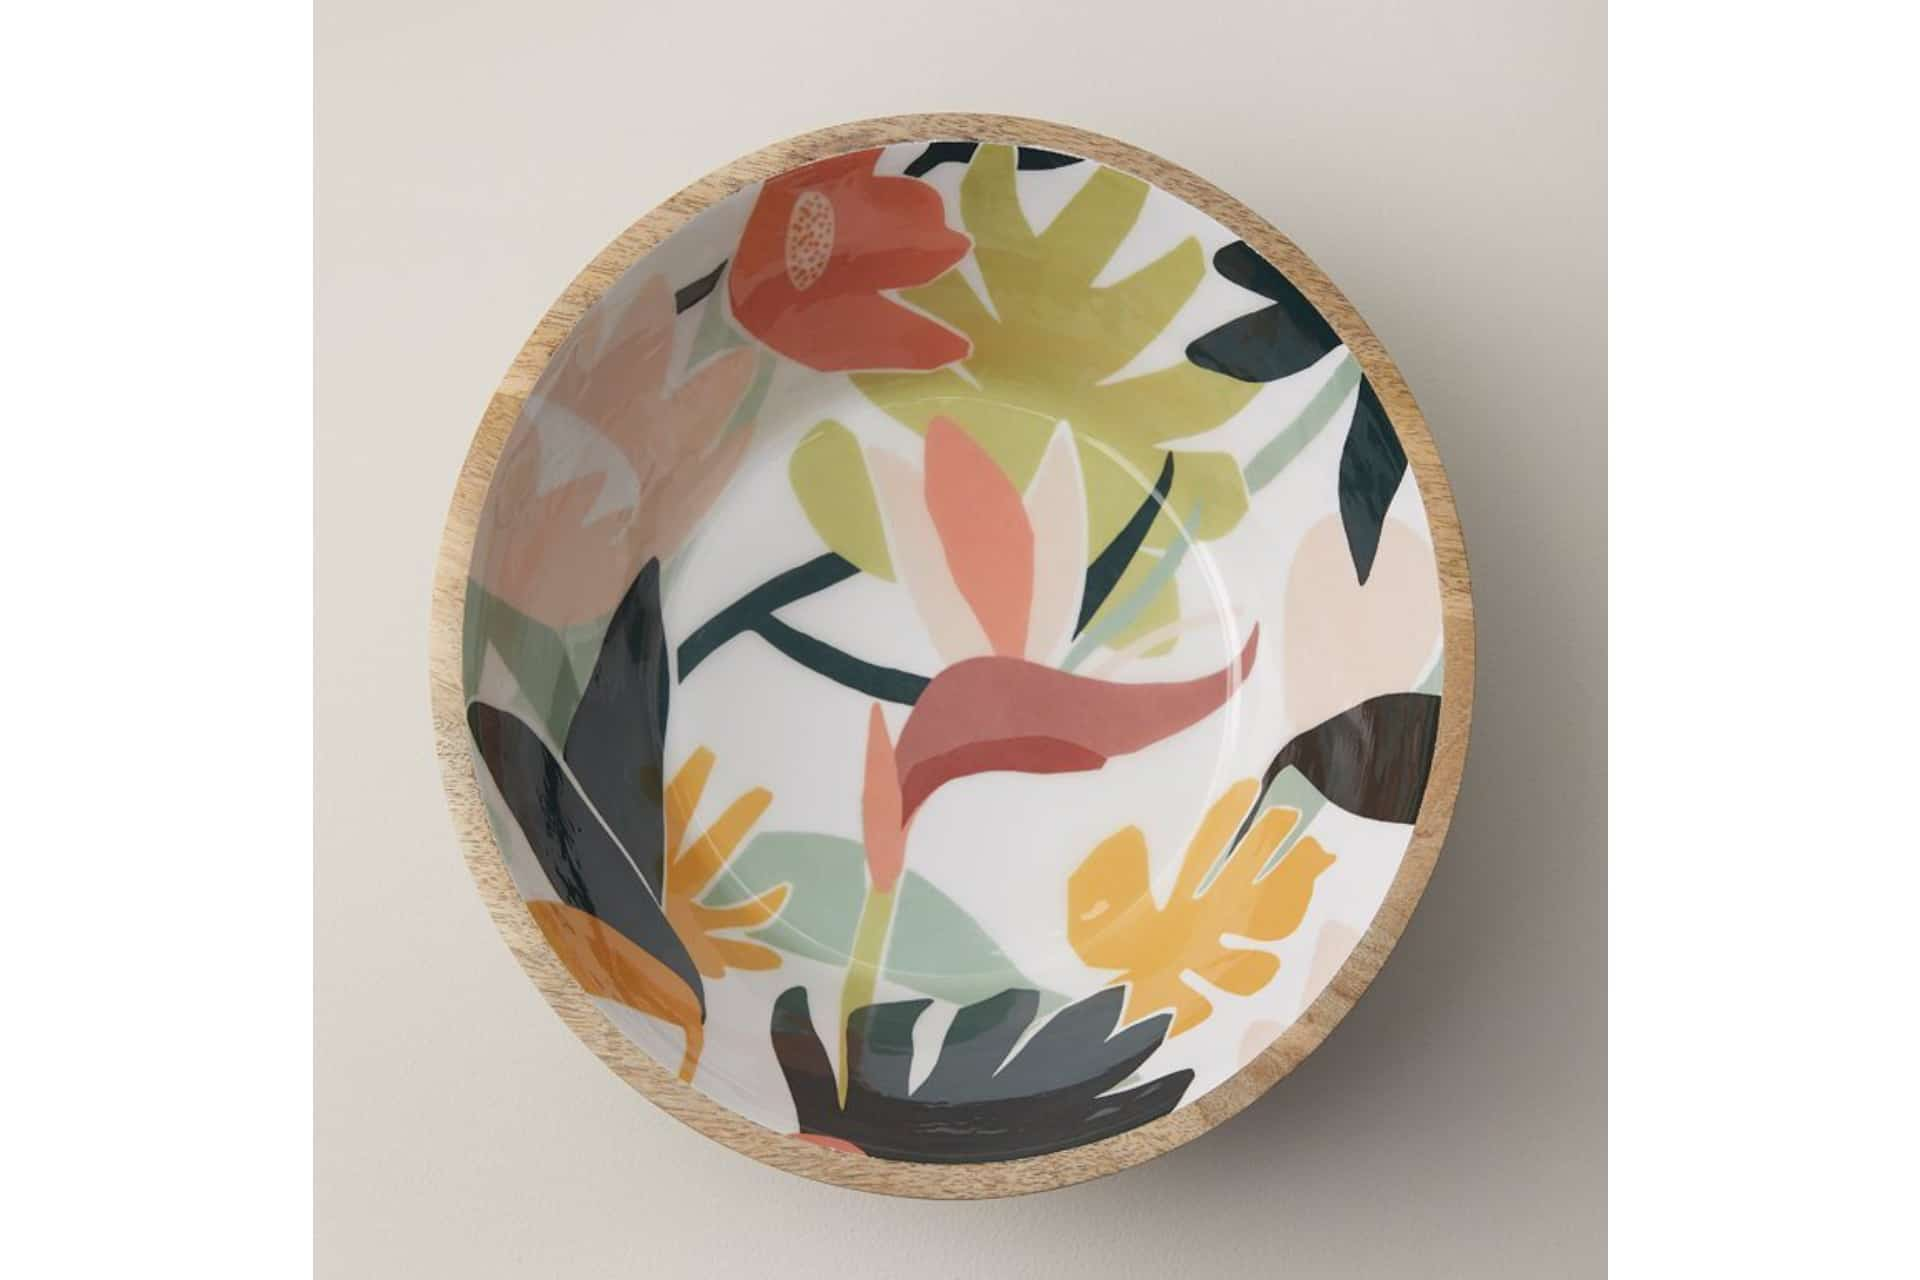 wooden bowl with floral patterned interior